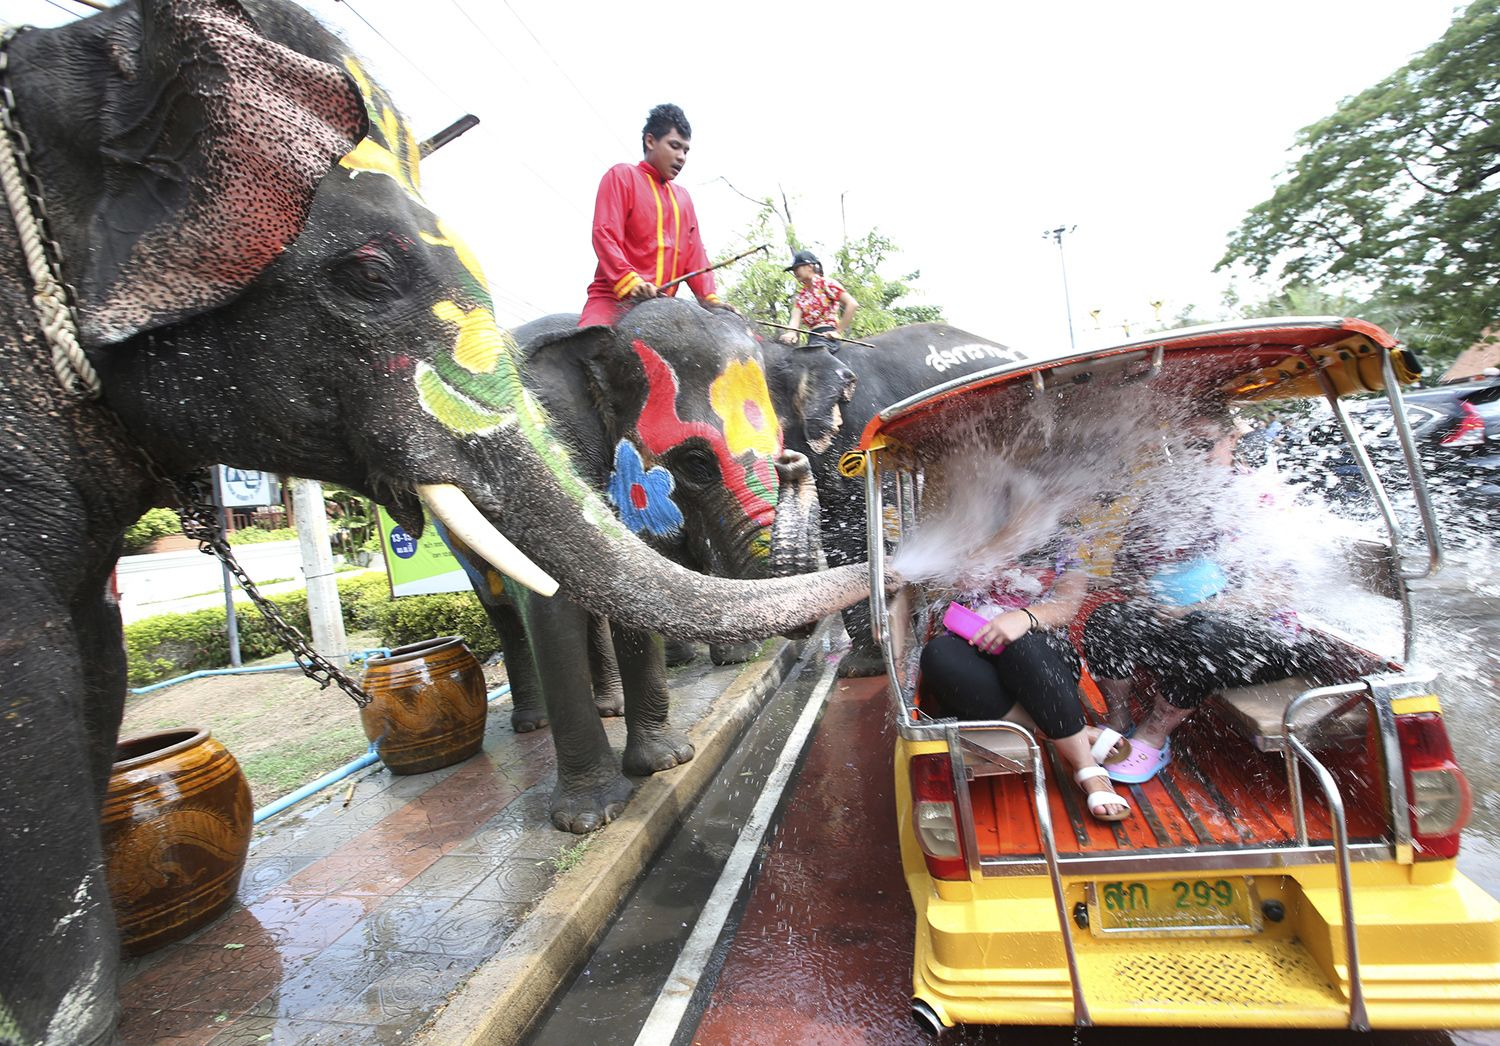 An elephant sprays water on tourists in a Tuk Tuk ahead of the Buddhist new year, known here as Songkran, in Ayutthaya province, Thailand, on April 11, 2017.